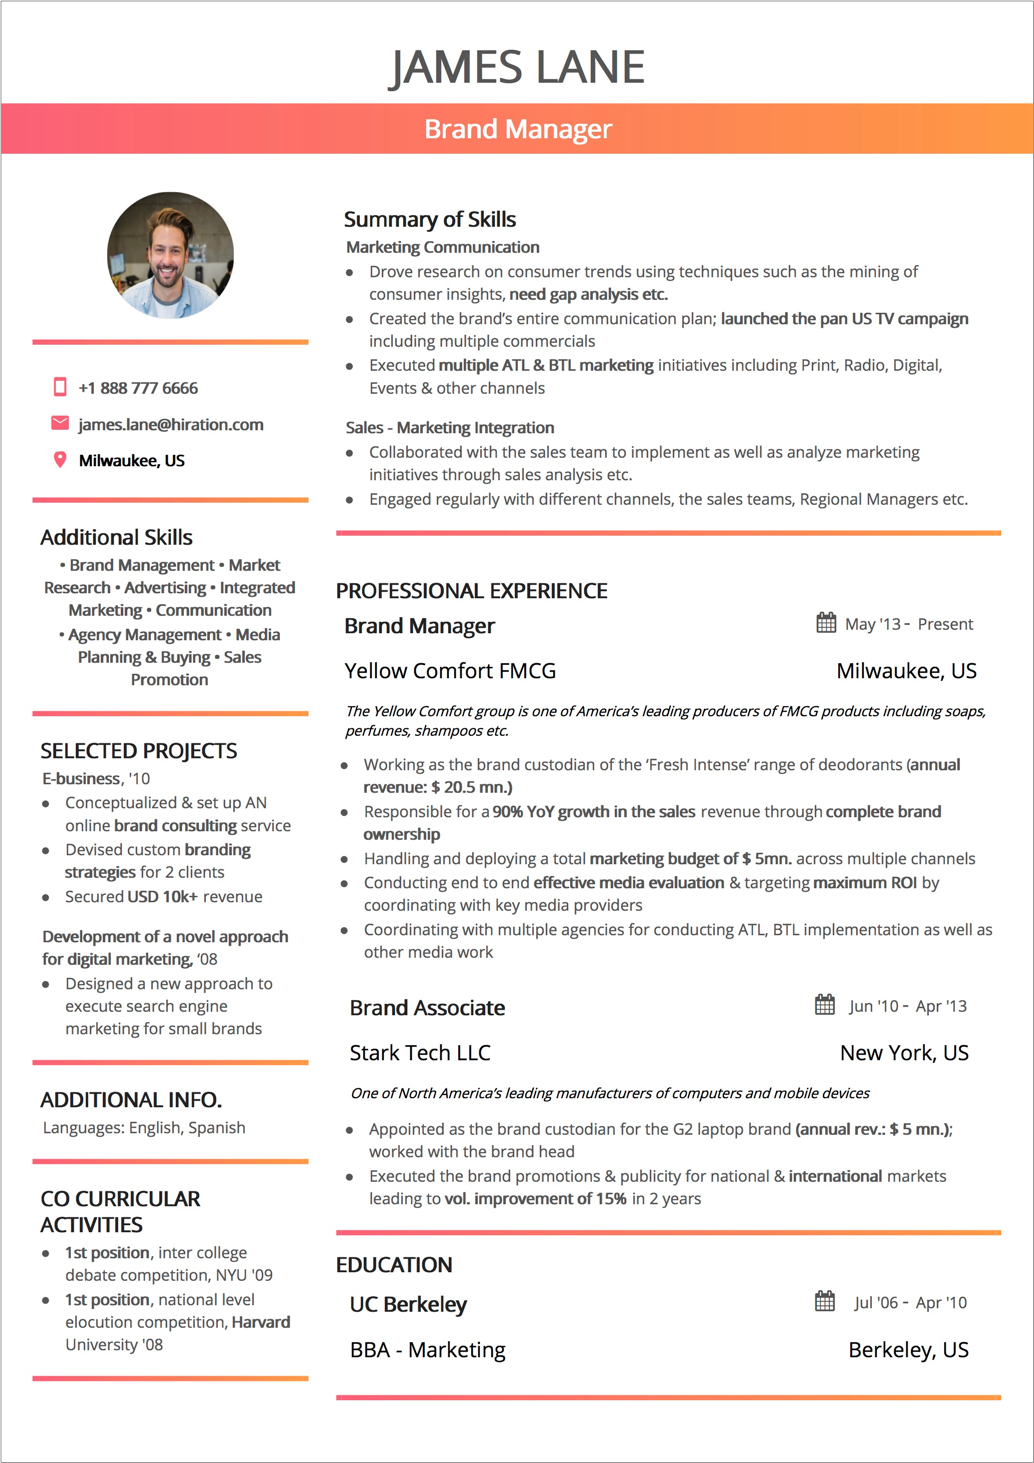 Combination Resume The 2020 Guide To Combination Resumes